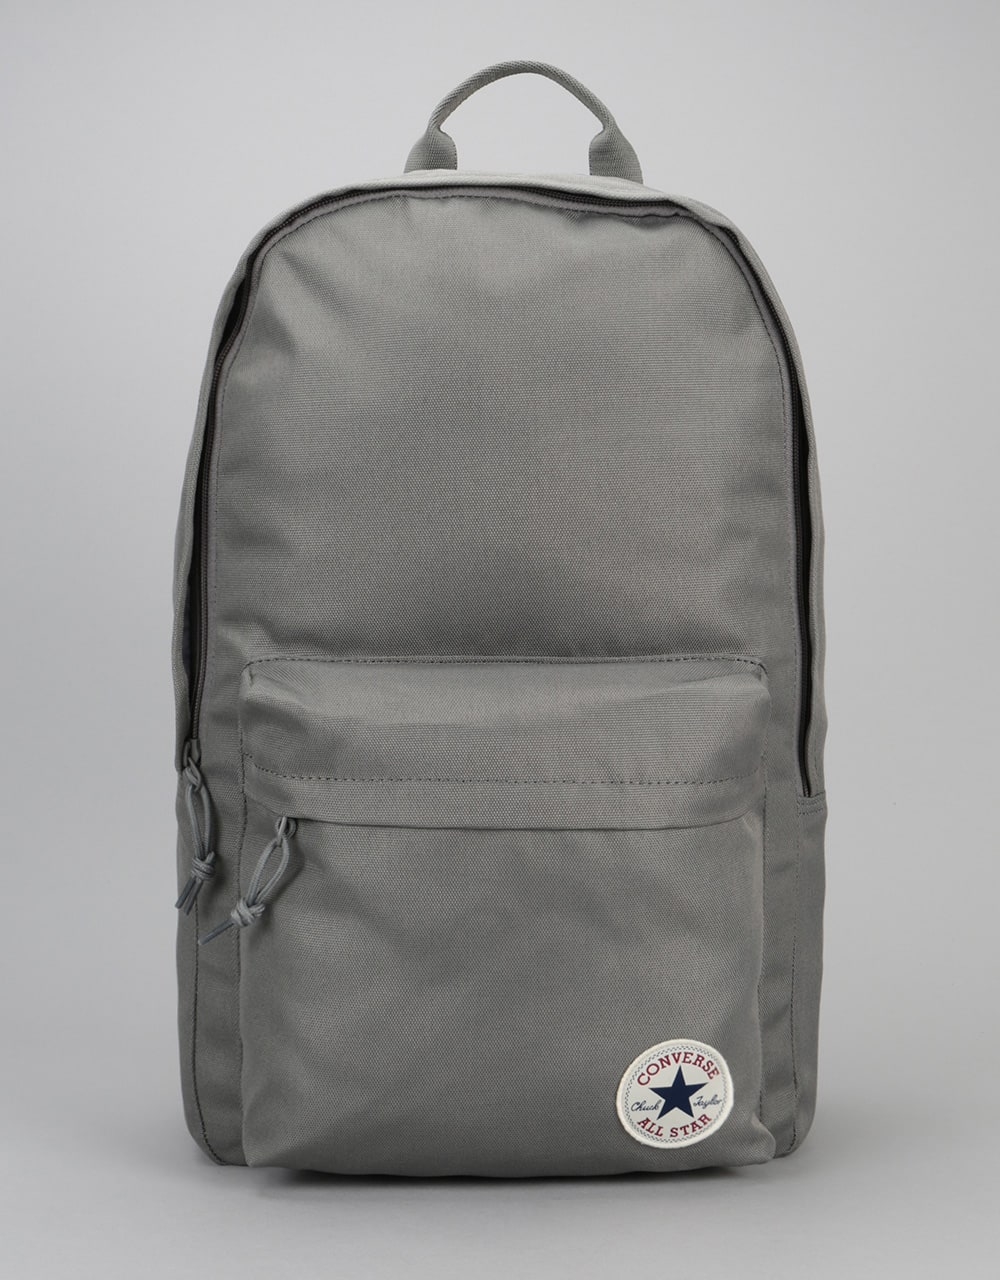 Converse Core Poly Backpack - Converse Charcoal  3dee1127f0800